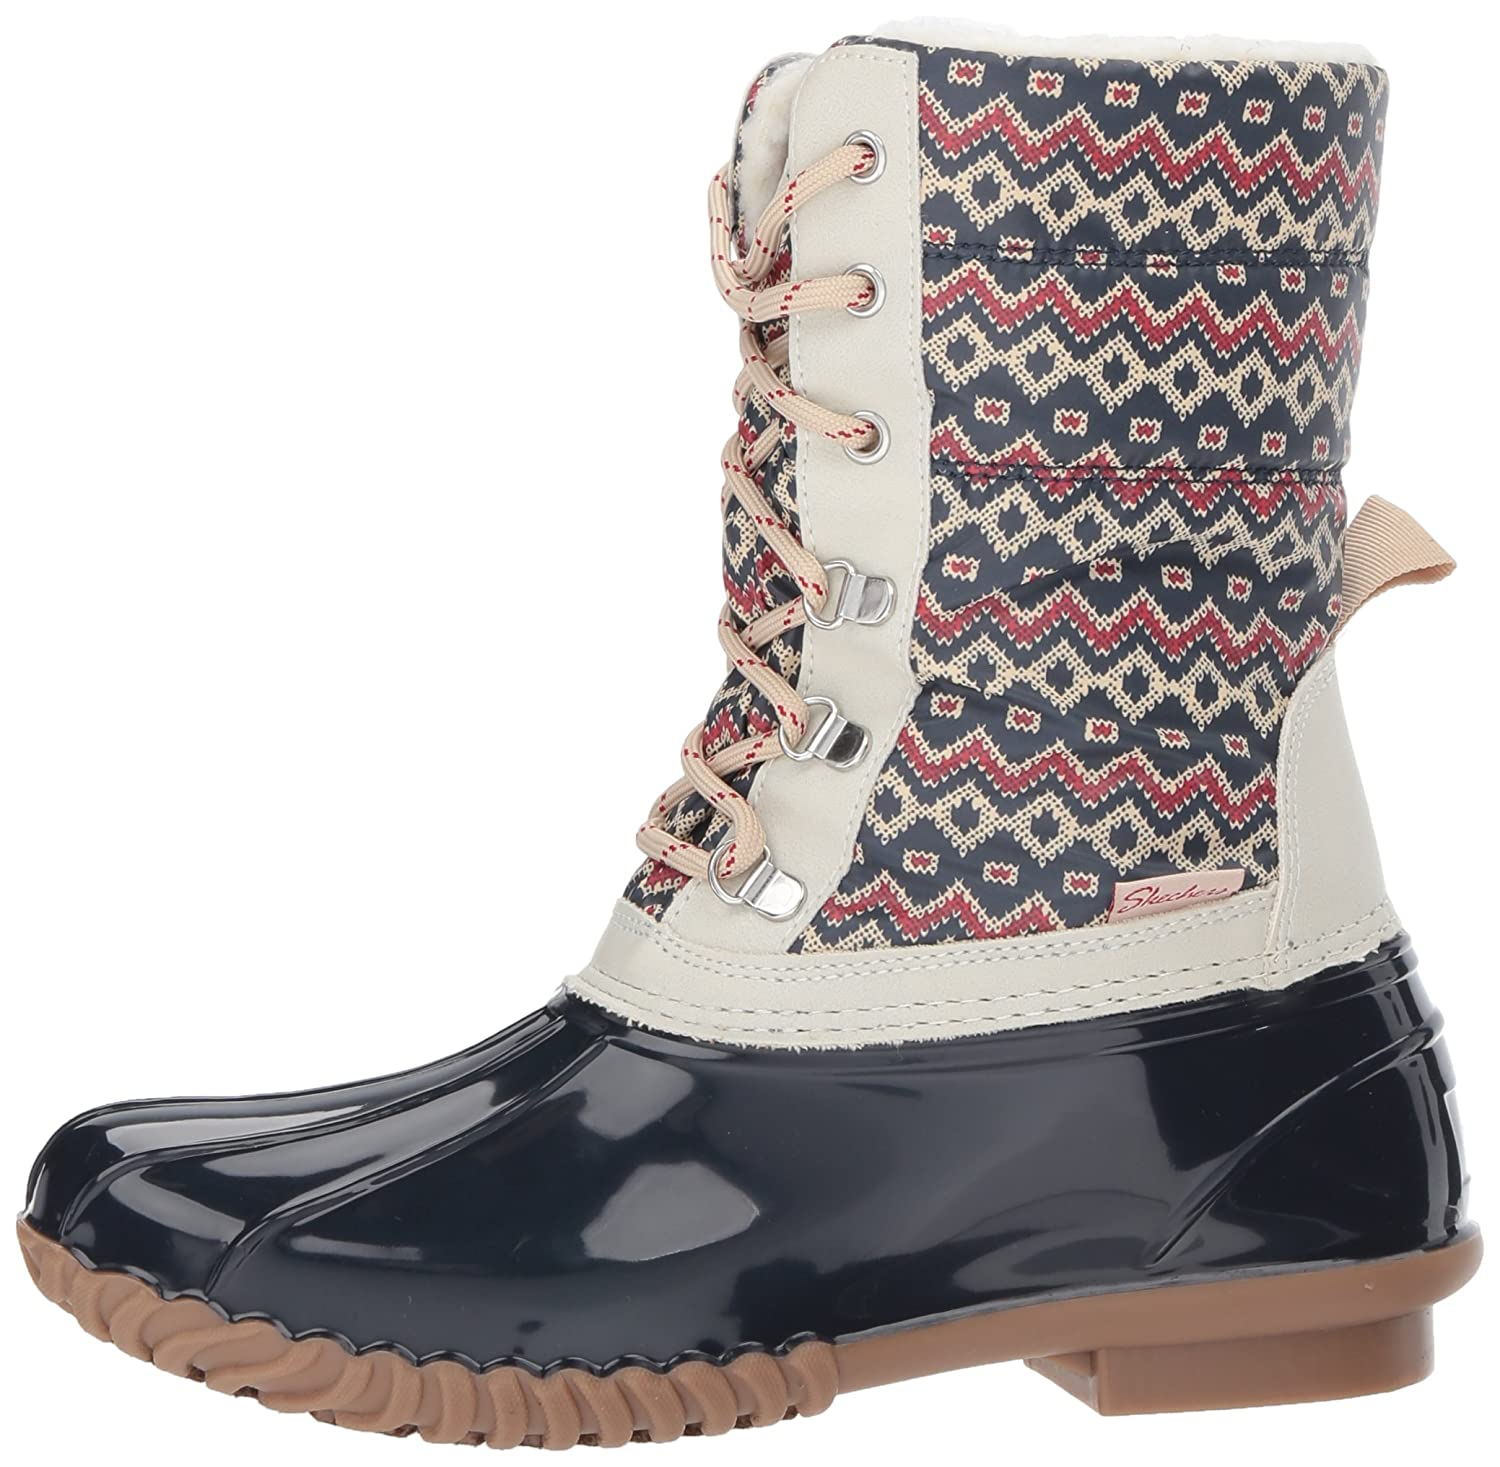 Skechers Women's Hampshire-Printed Quilted Snow Boot B0711M2V1Y 11 M US|Navy Natural